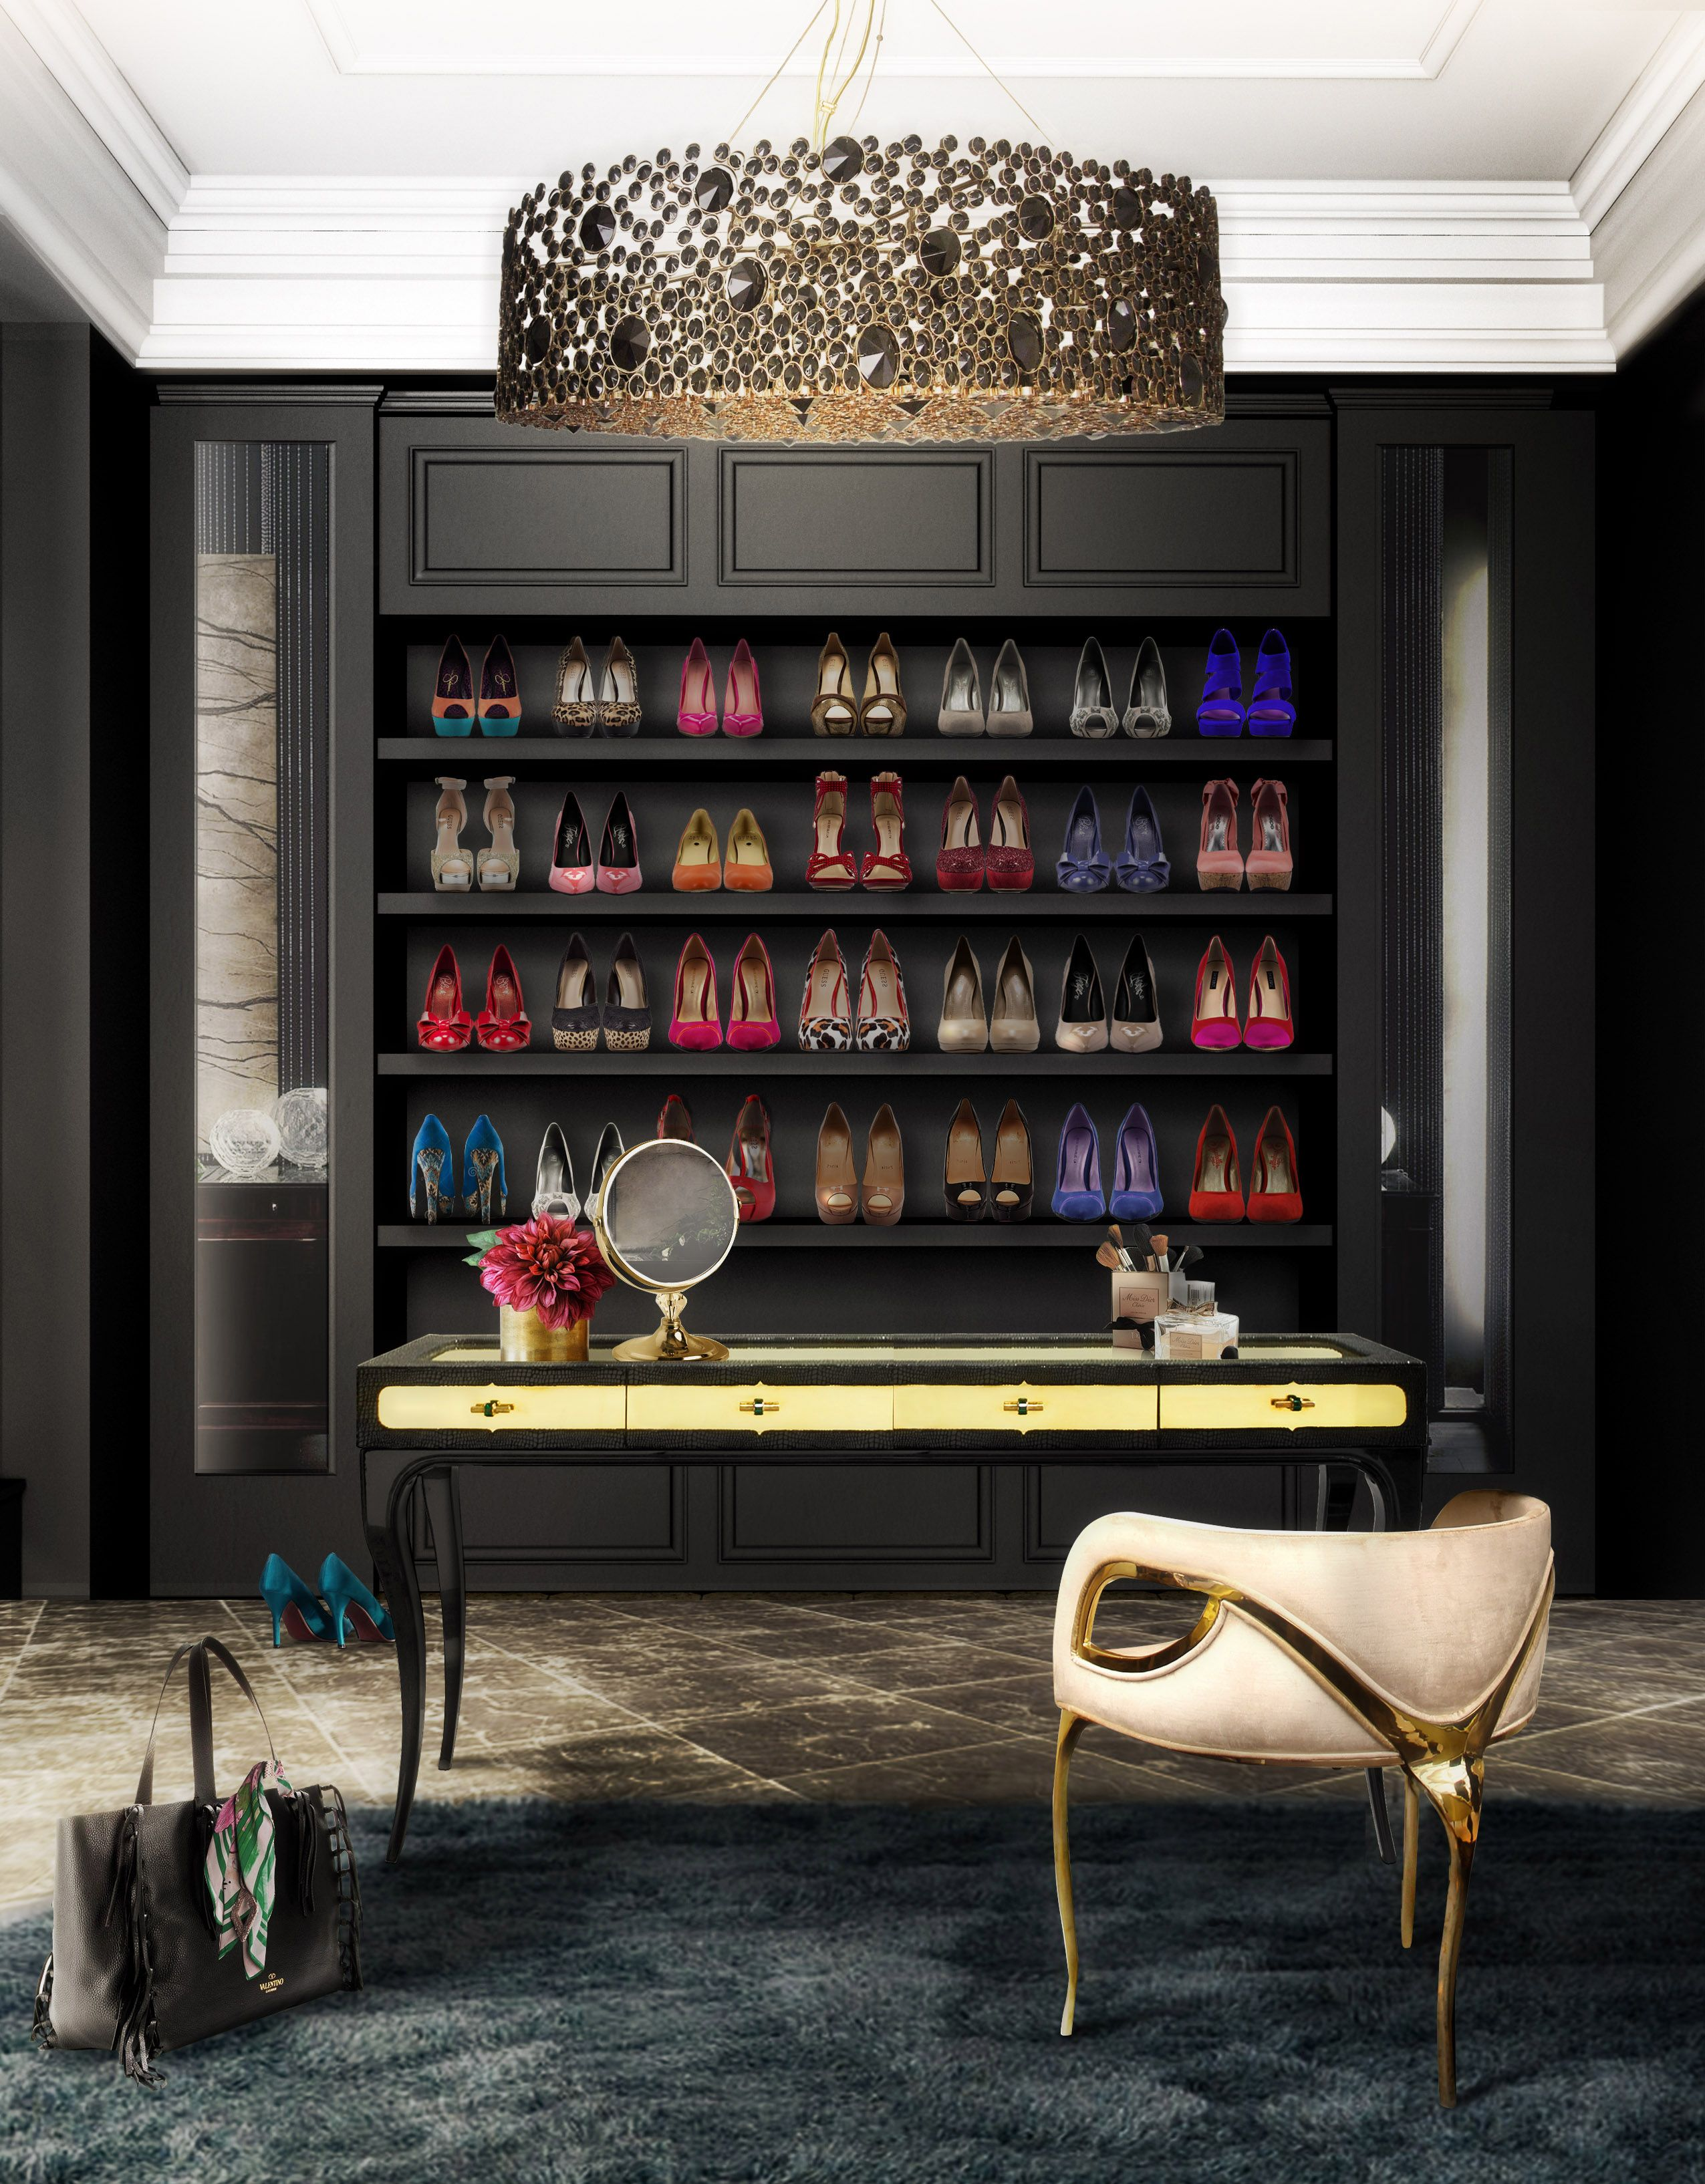 luxury designer dressing room furniture for the worlds most luxury designer dressing room furniture for the worlds most glamorous interior design projects beautiful custom